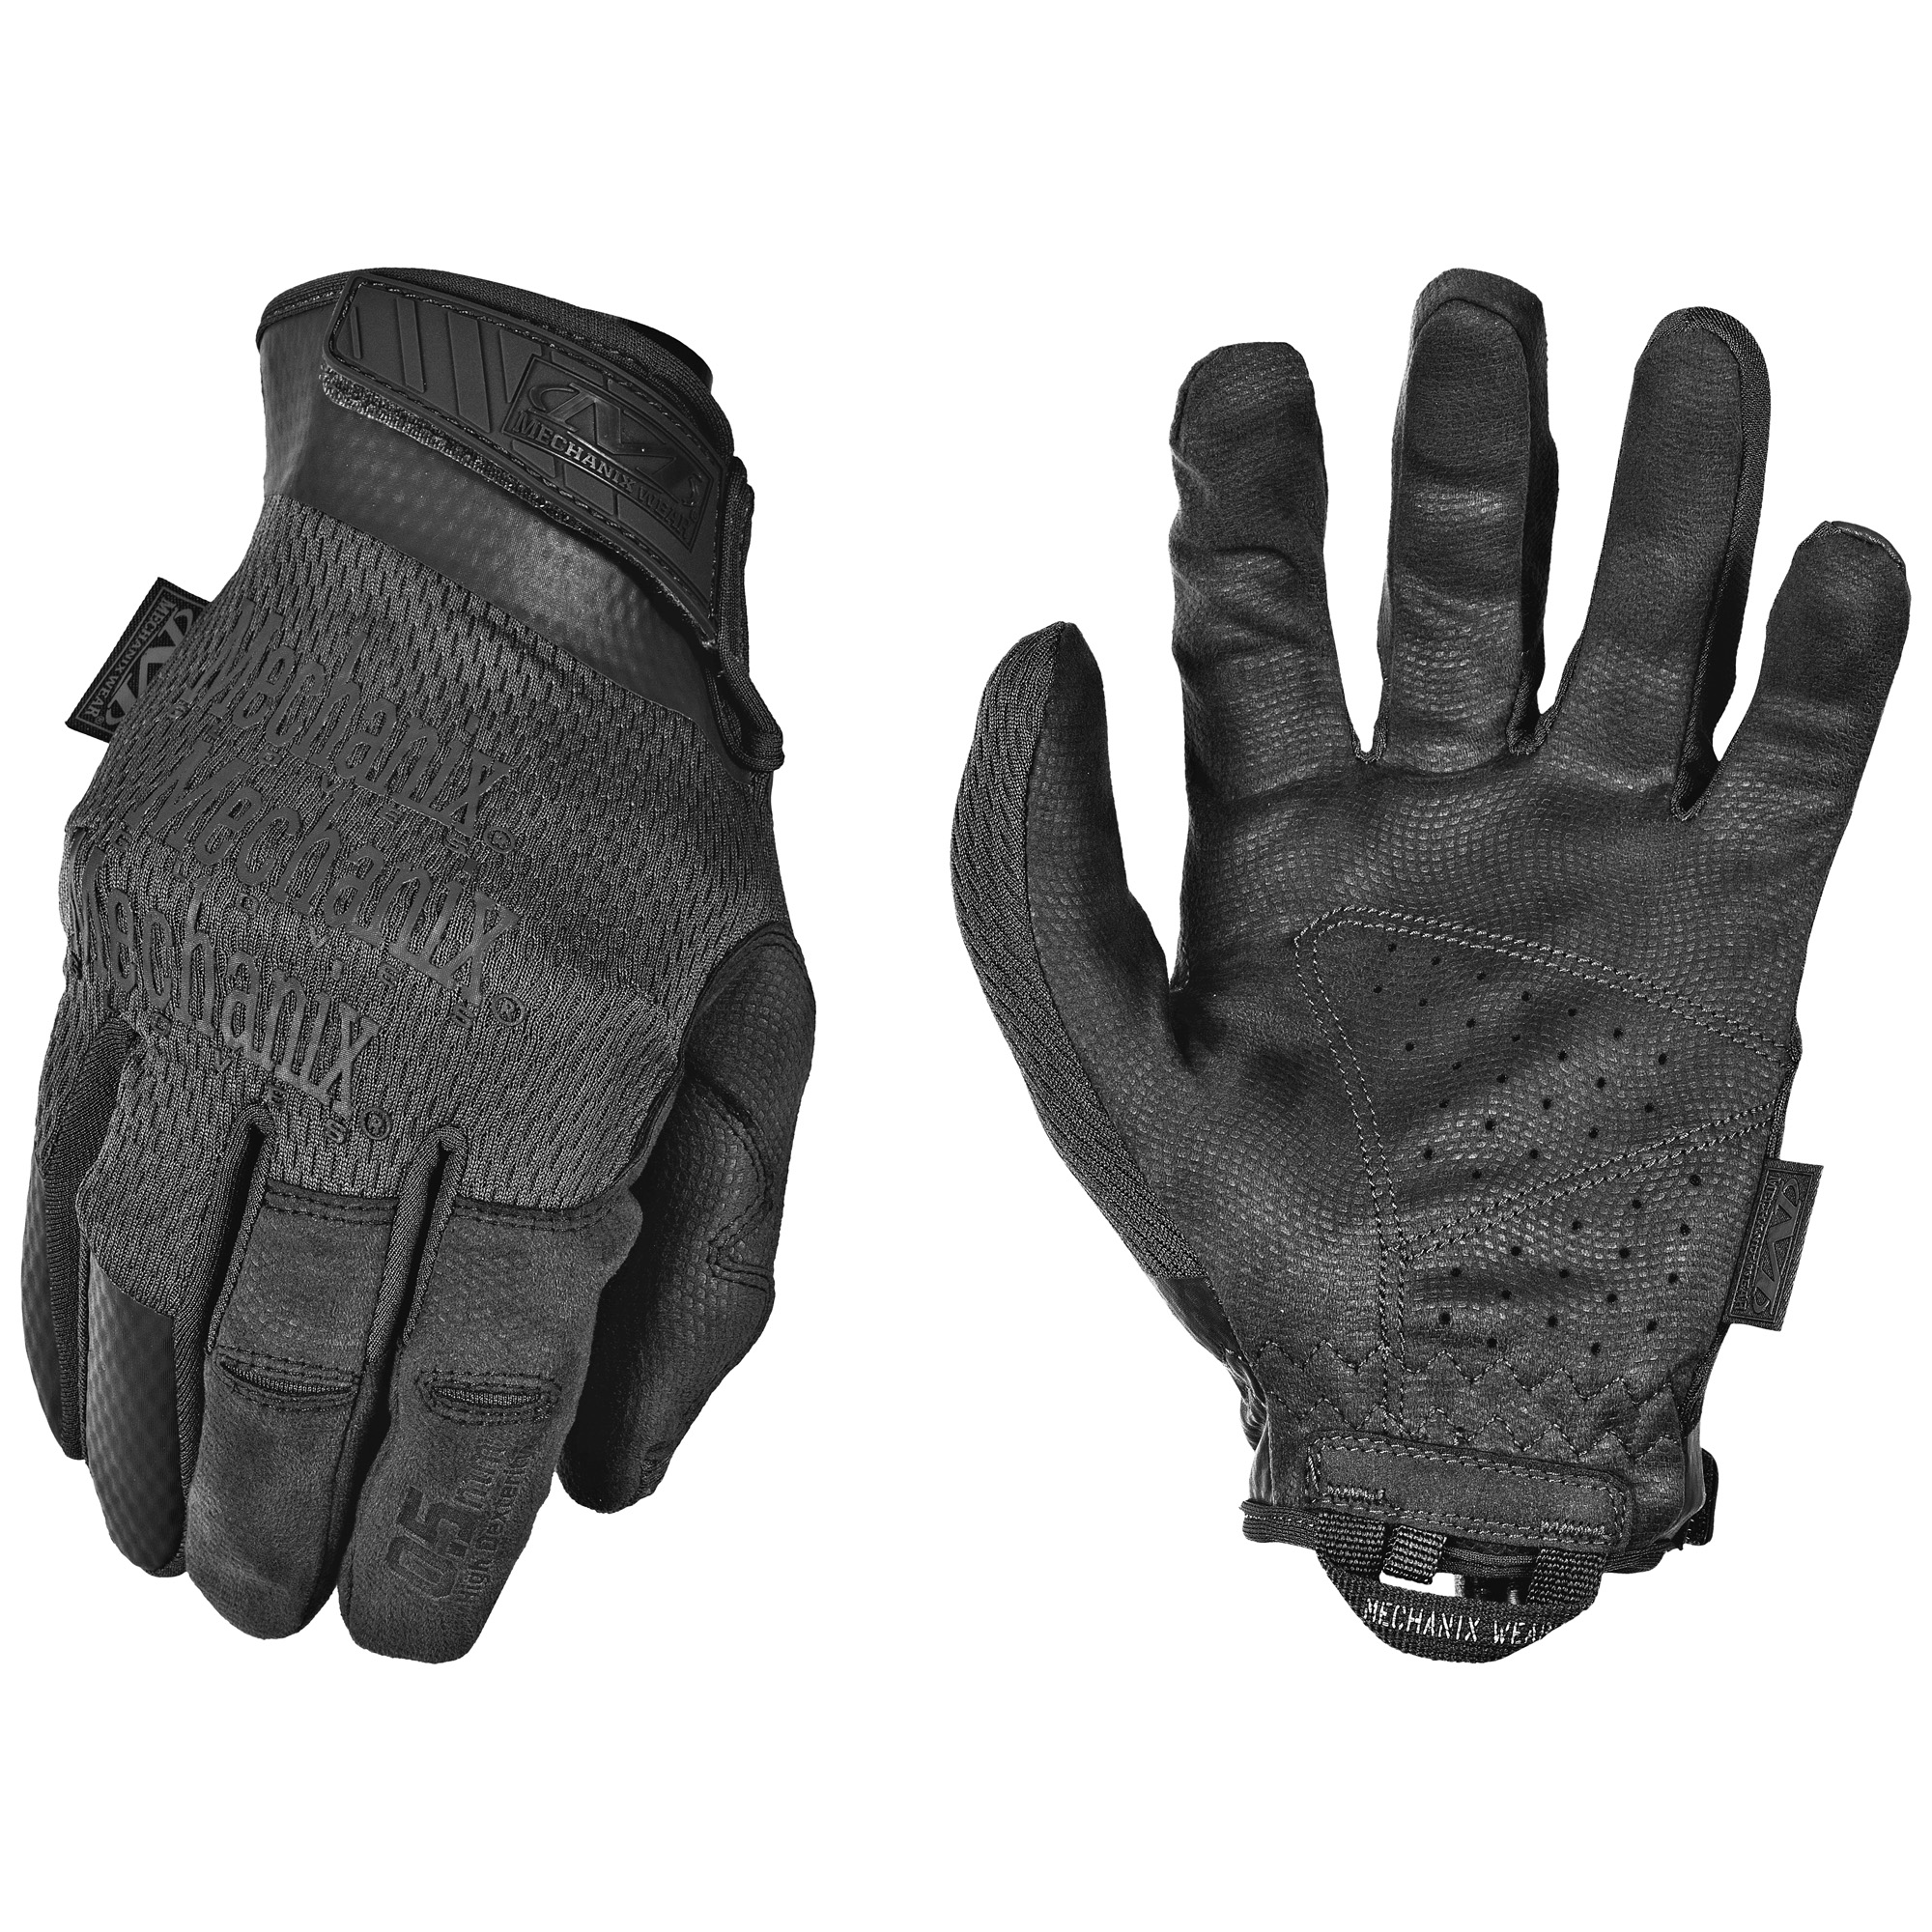 Precision feel and high dexterity are synonymous with 0.5mm palm protection. Our Specialty 0.5mm Covert shooting gloves are built to deliver natural feel and lightweight hand protection in an anatomical design. 0.5mm AX-Suede(TM) provides the perfect blend of tactile control and protection in the field or at the shooting range. Breathable TrekDry(R) conforms to the back of your hands to reduce heat build-up and expandable flex joints improve trigger finger mobility for smooth manipulation.